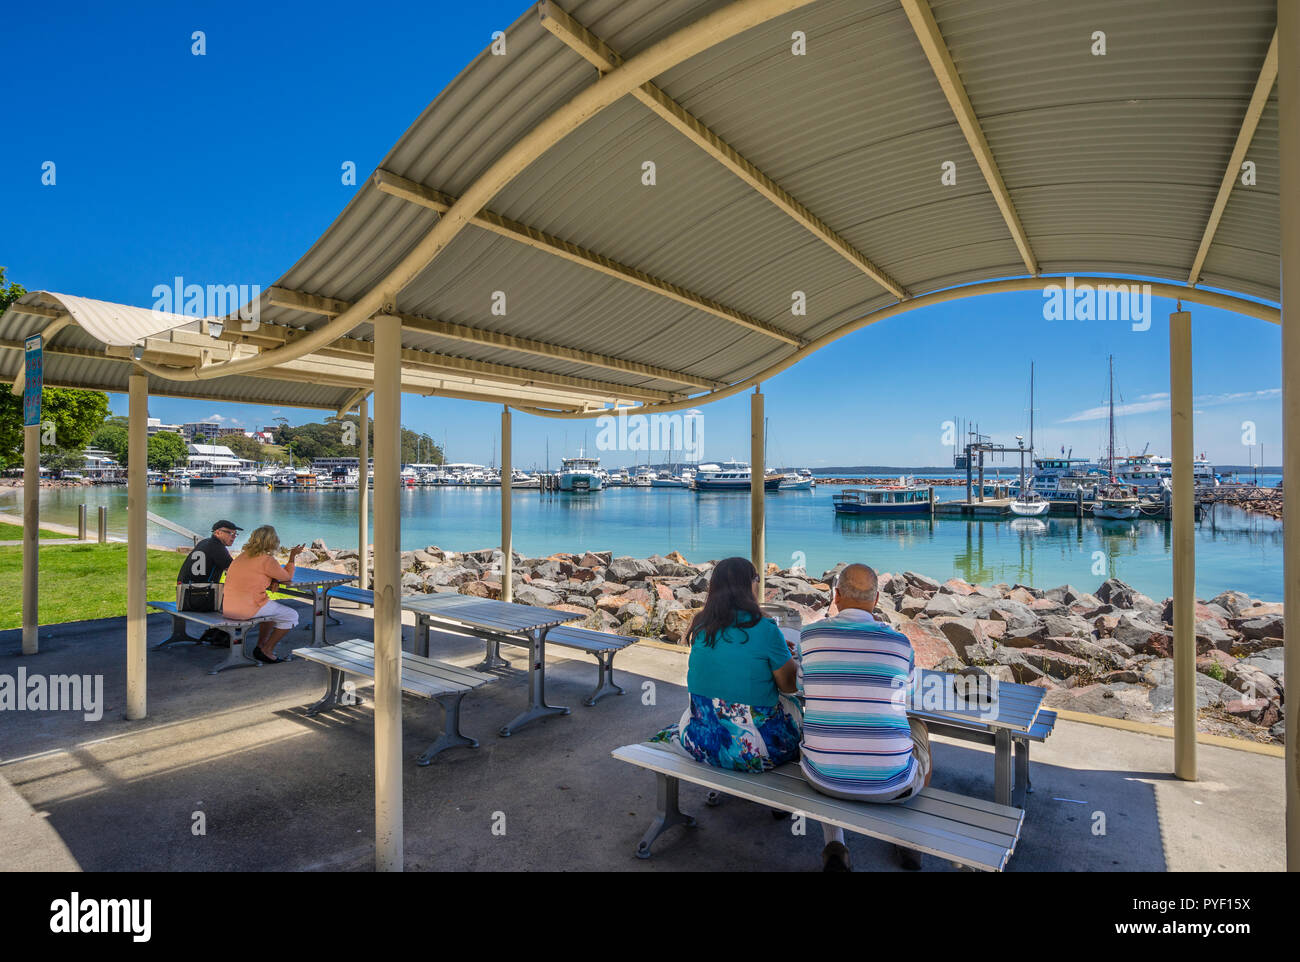 picnic tables at Nelson Bay Foreshore Reserve with view of the marina and wharf, Port Stephens, Hunter Region, New South Wales, Australia - Stock Image